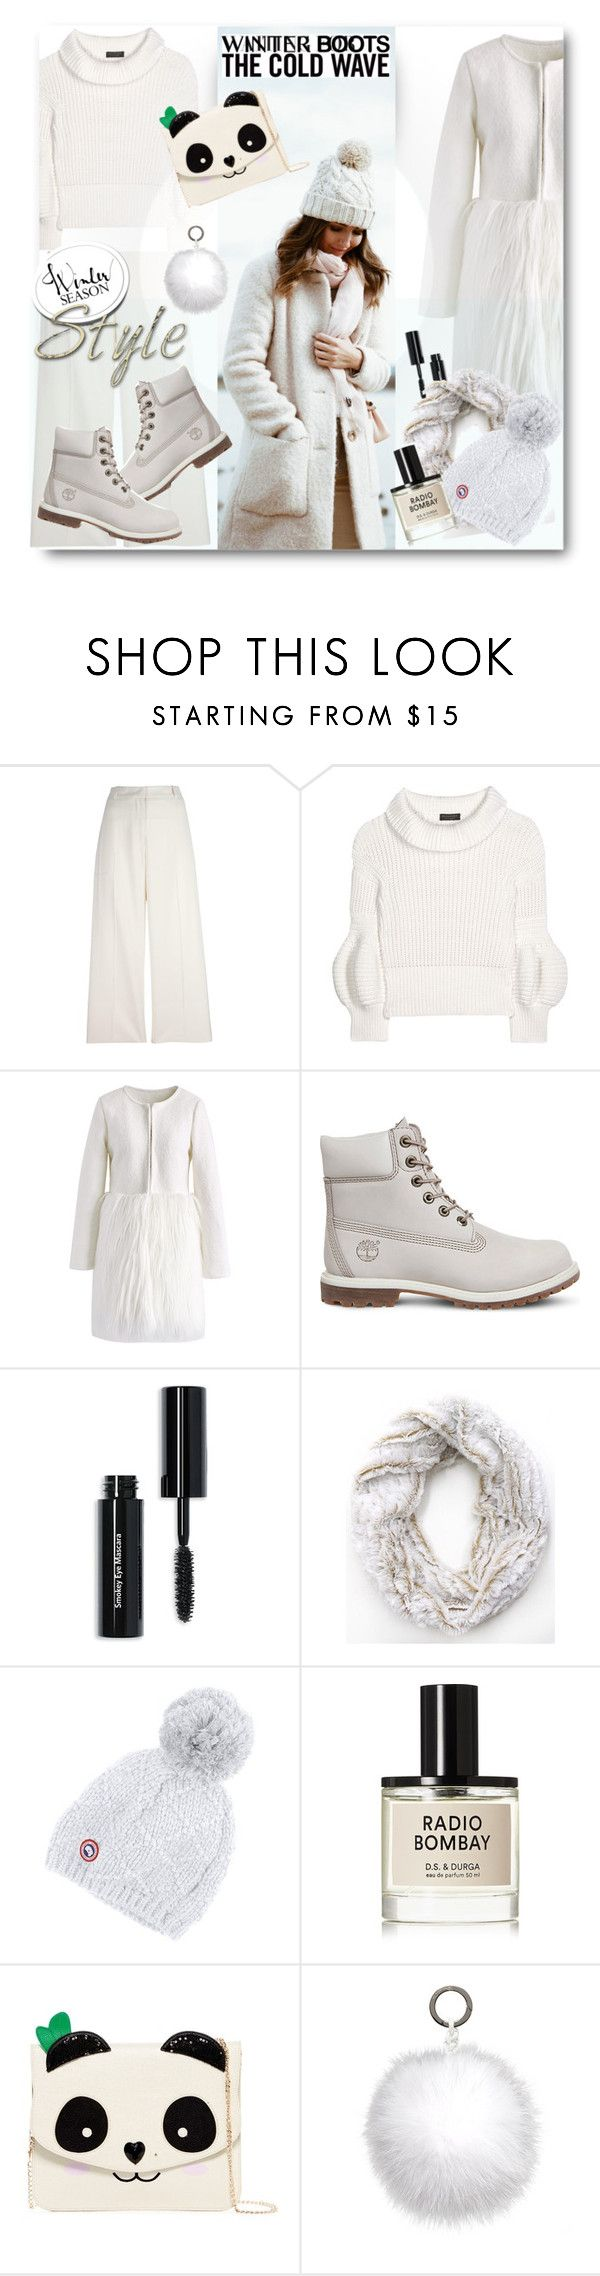 """Cozy Winter Boots"" by esch103 ❤ liked on Polyvore featuring Ermanno Scervino, Burberry, Chicwish, Timberland, Bobbi Brown Cosmetics, Canada Goose, D.S. & DURGA, Betsey Johnson, Oscar de la Renta and winterboots"